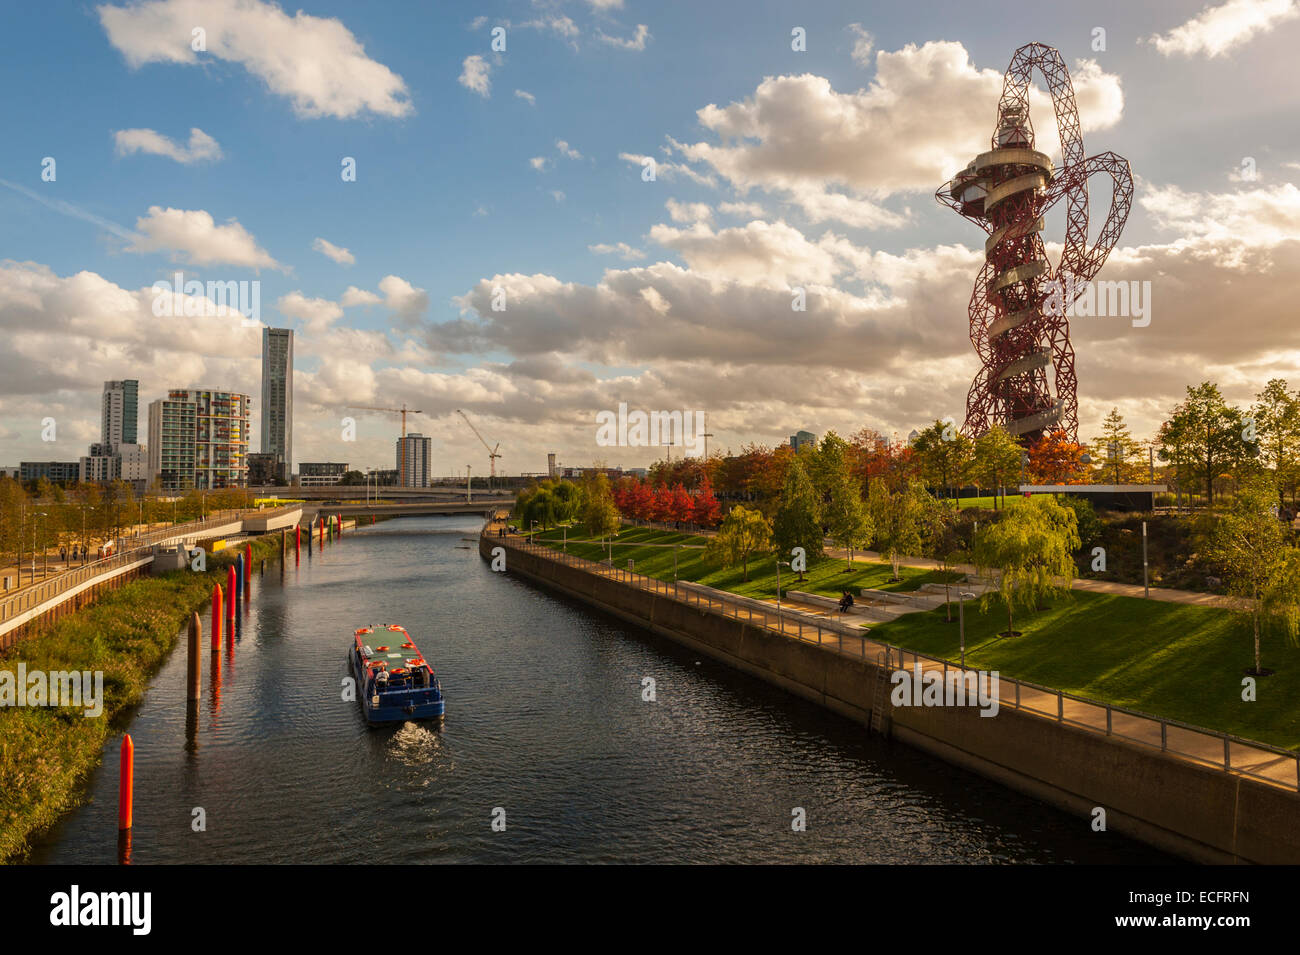 Boat on the river Lea with Stratford City and the orbital tower in the background. - Stock Image